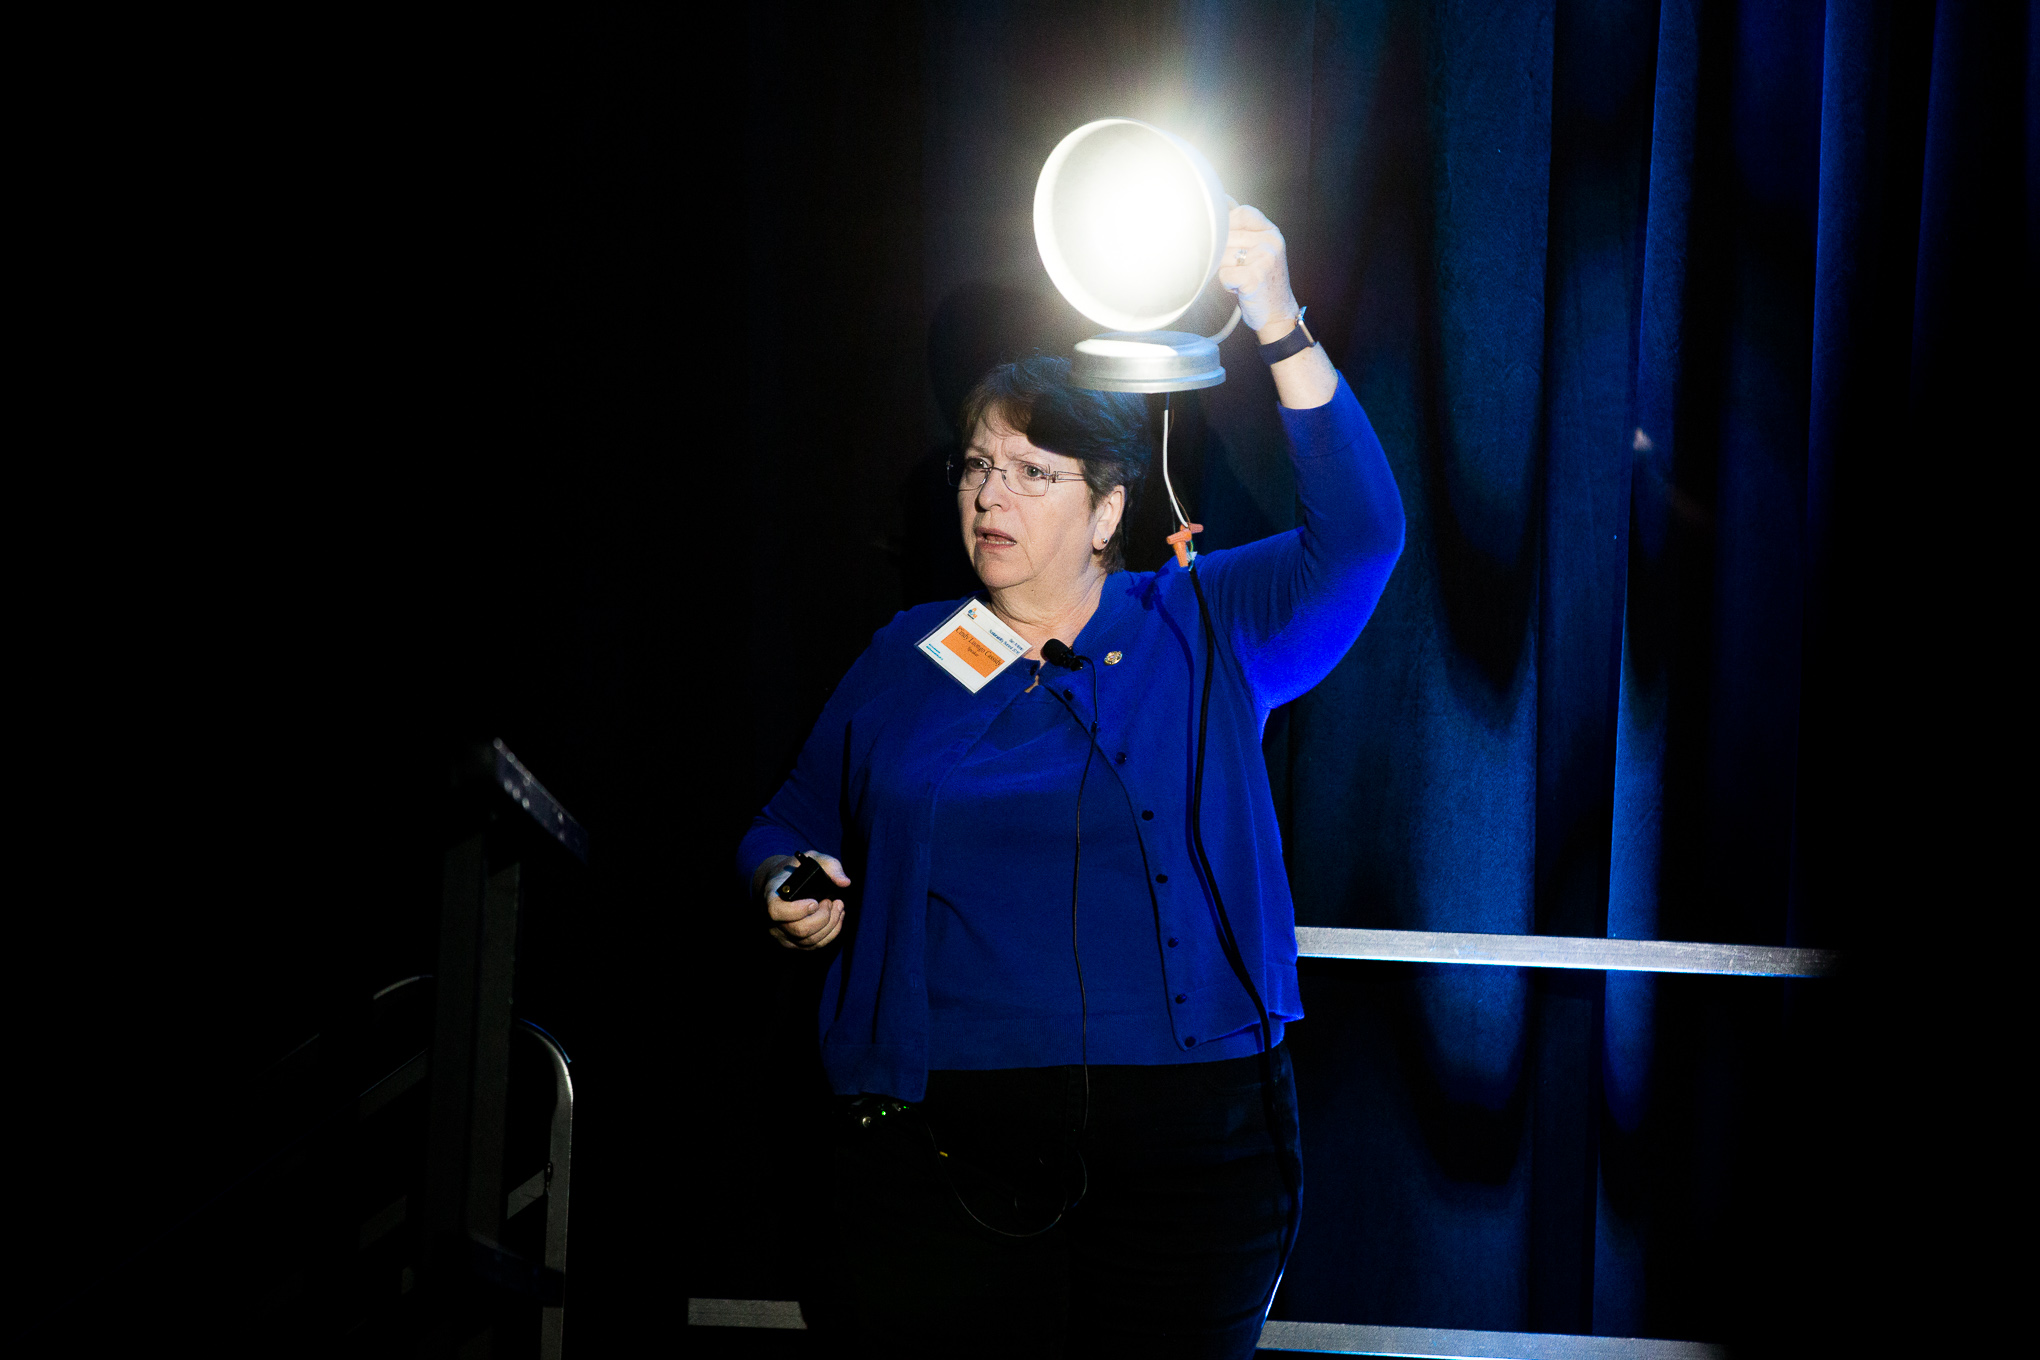 Texas Section Leader of International Dark-Sky Association Cindy Luongo Cassidy demonstrates how directing light is more efficient.